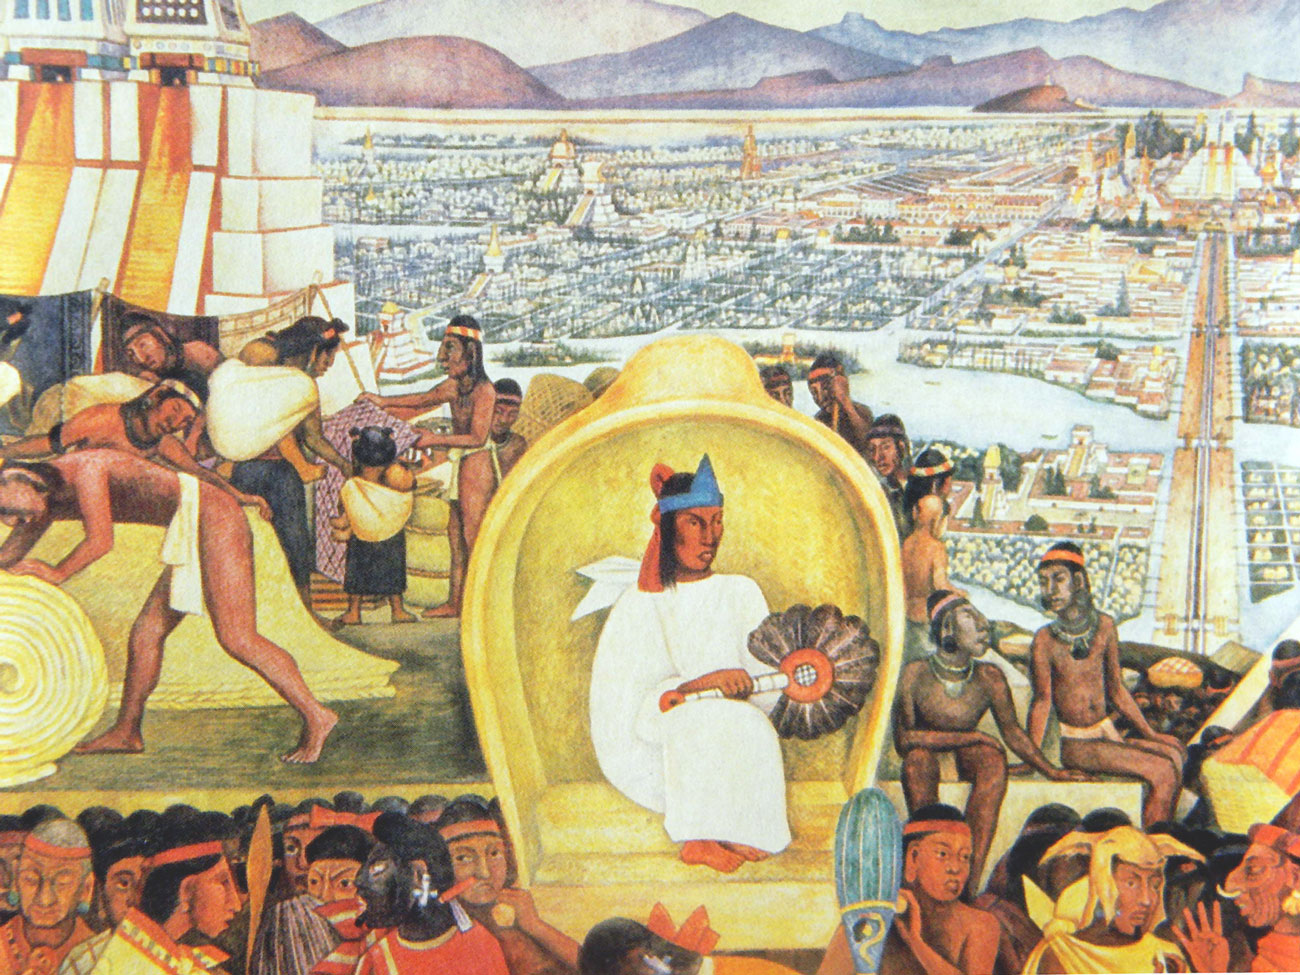 an analysis of aztec indians 4 seasons educational resources for english language learners about history, maths, physics, history and geography notes an analysis of the aztecs indians summaries handout draft school.